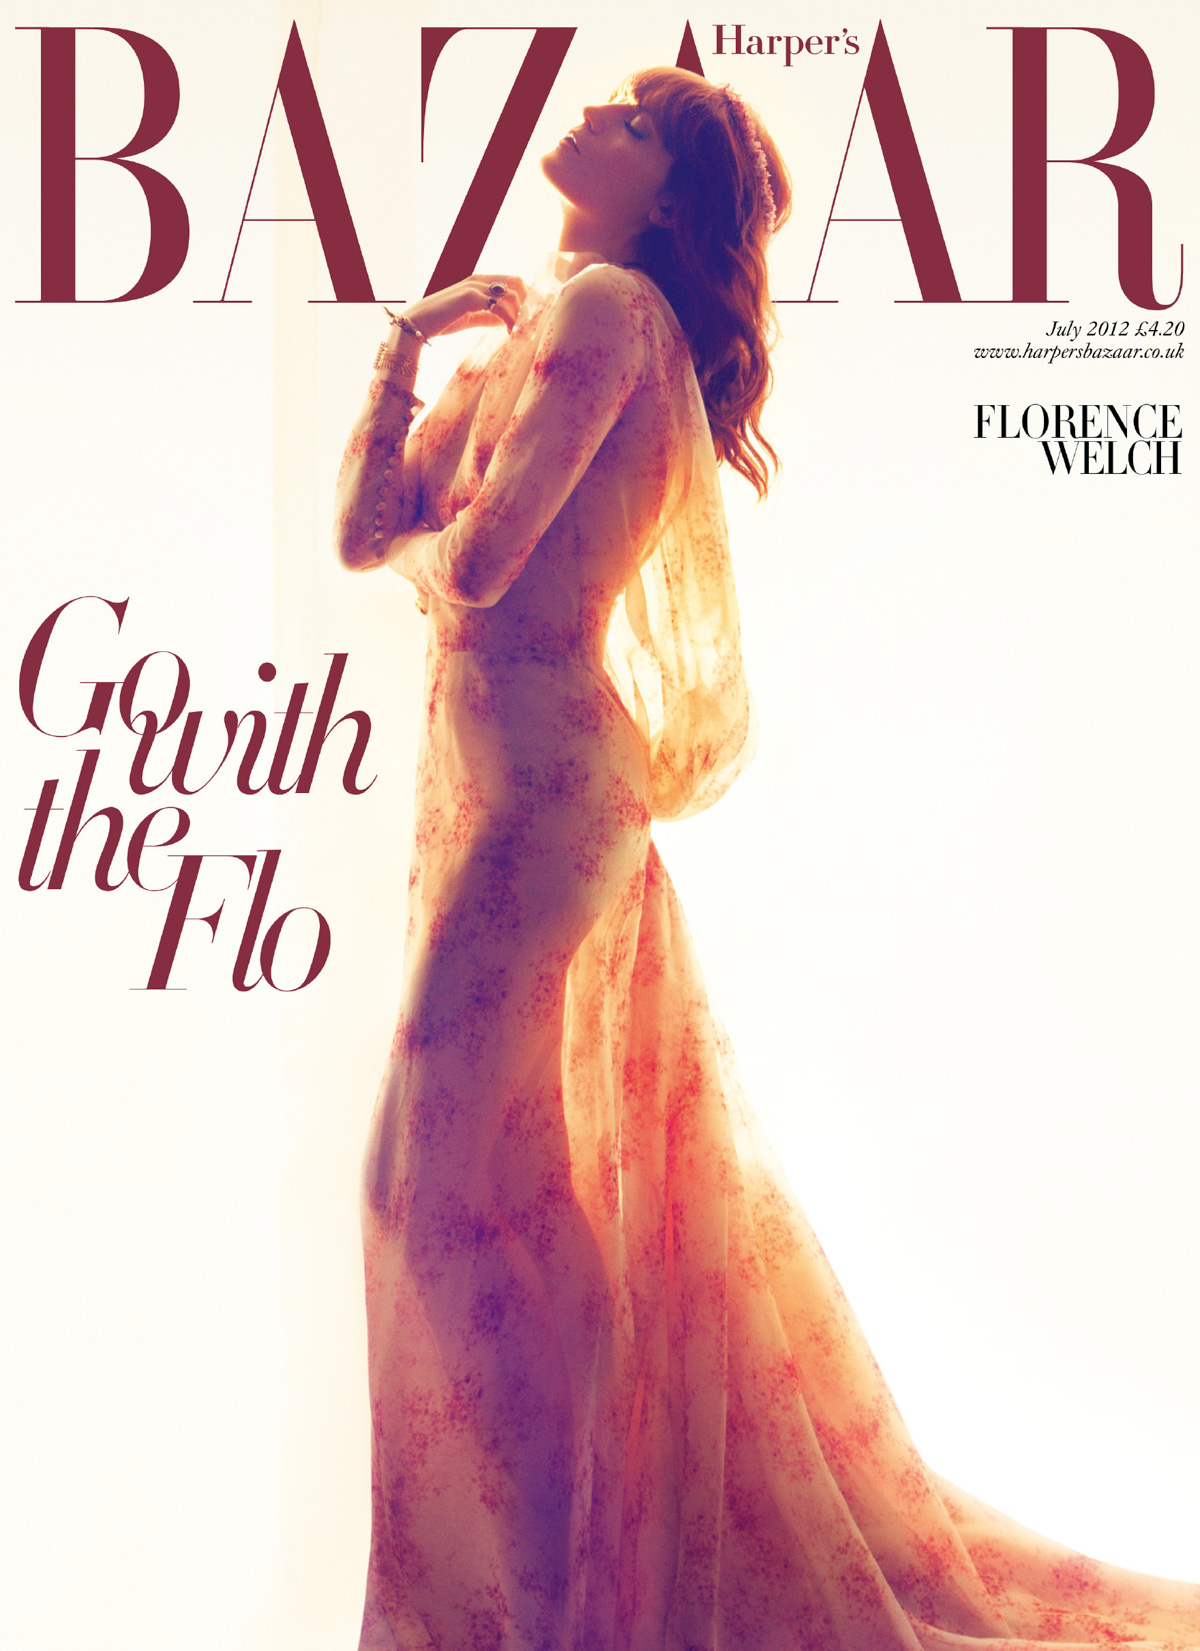 house-of-usher-harpers-bazaar-magazine-28